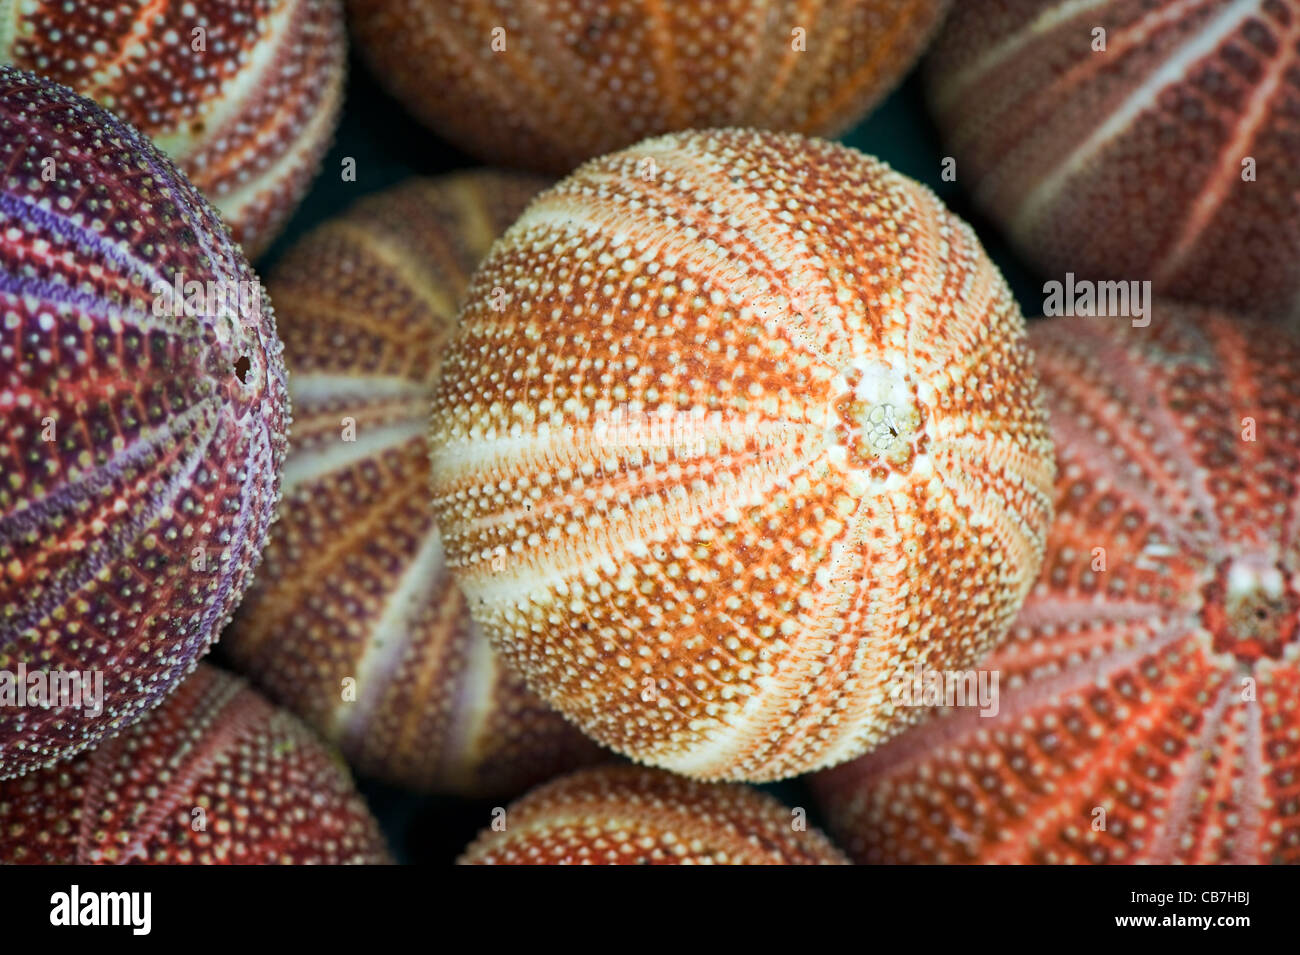 Sea Urchin shells or 'tests' on the Isles of Scilly - Stock Image